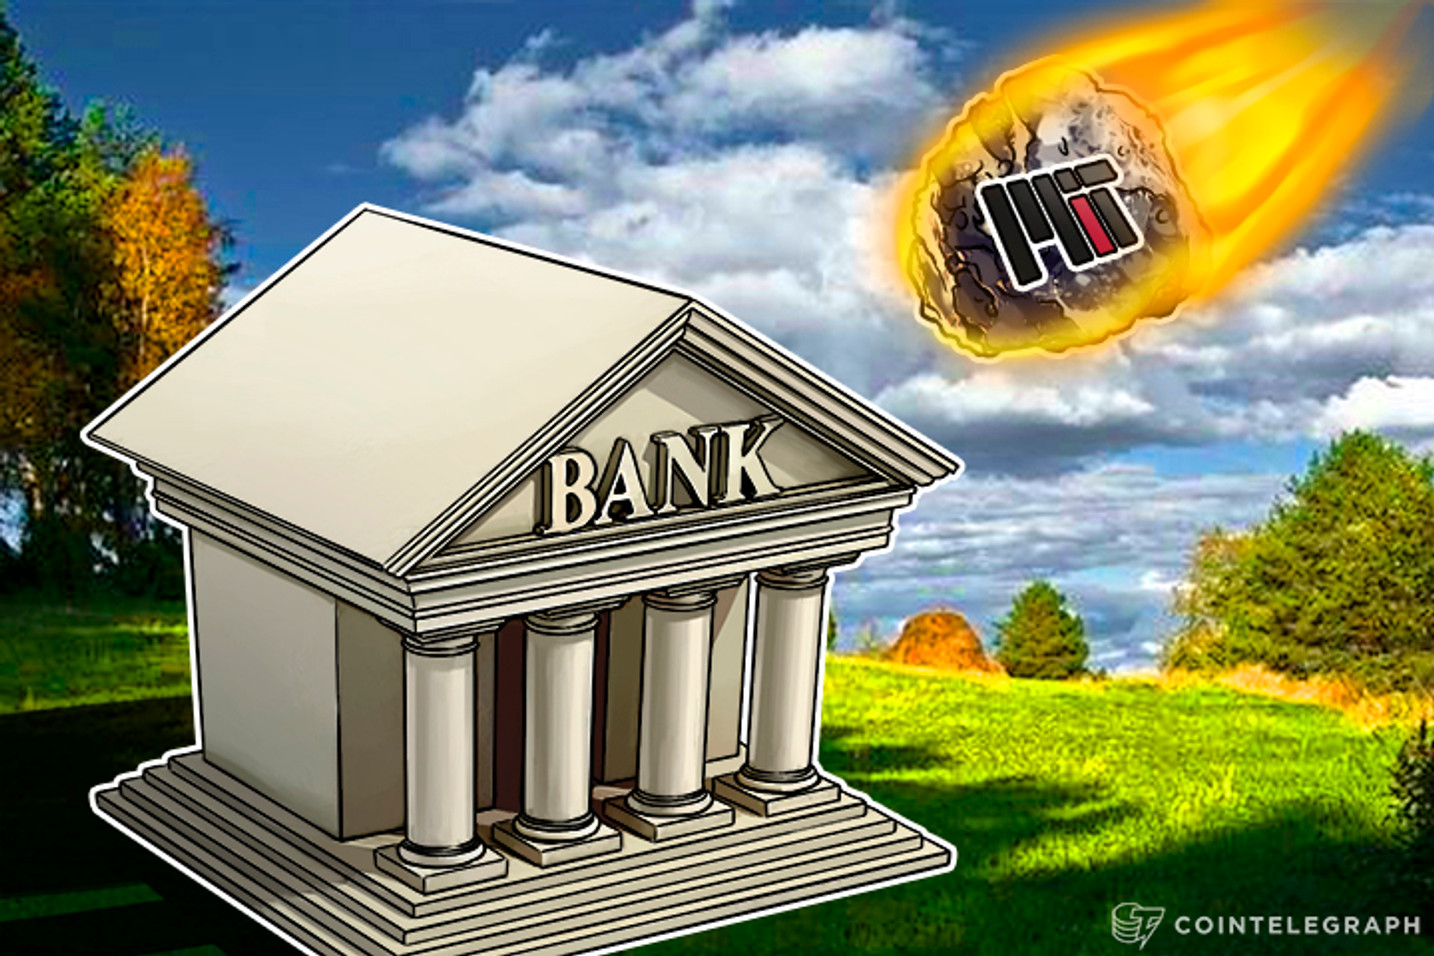 MIT Report: Blockchain for Banks - New Era or Lipstick on Pig?